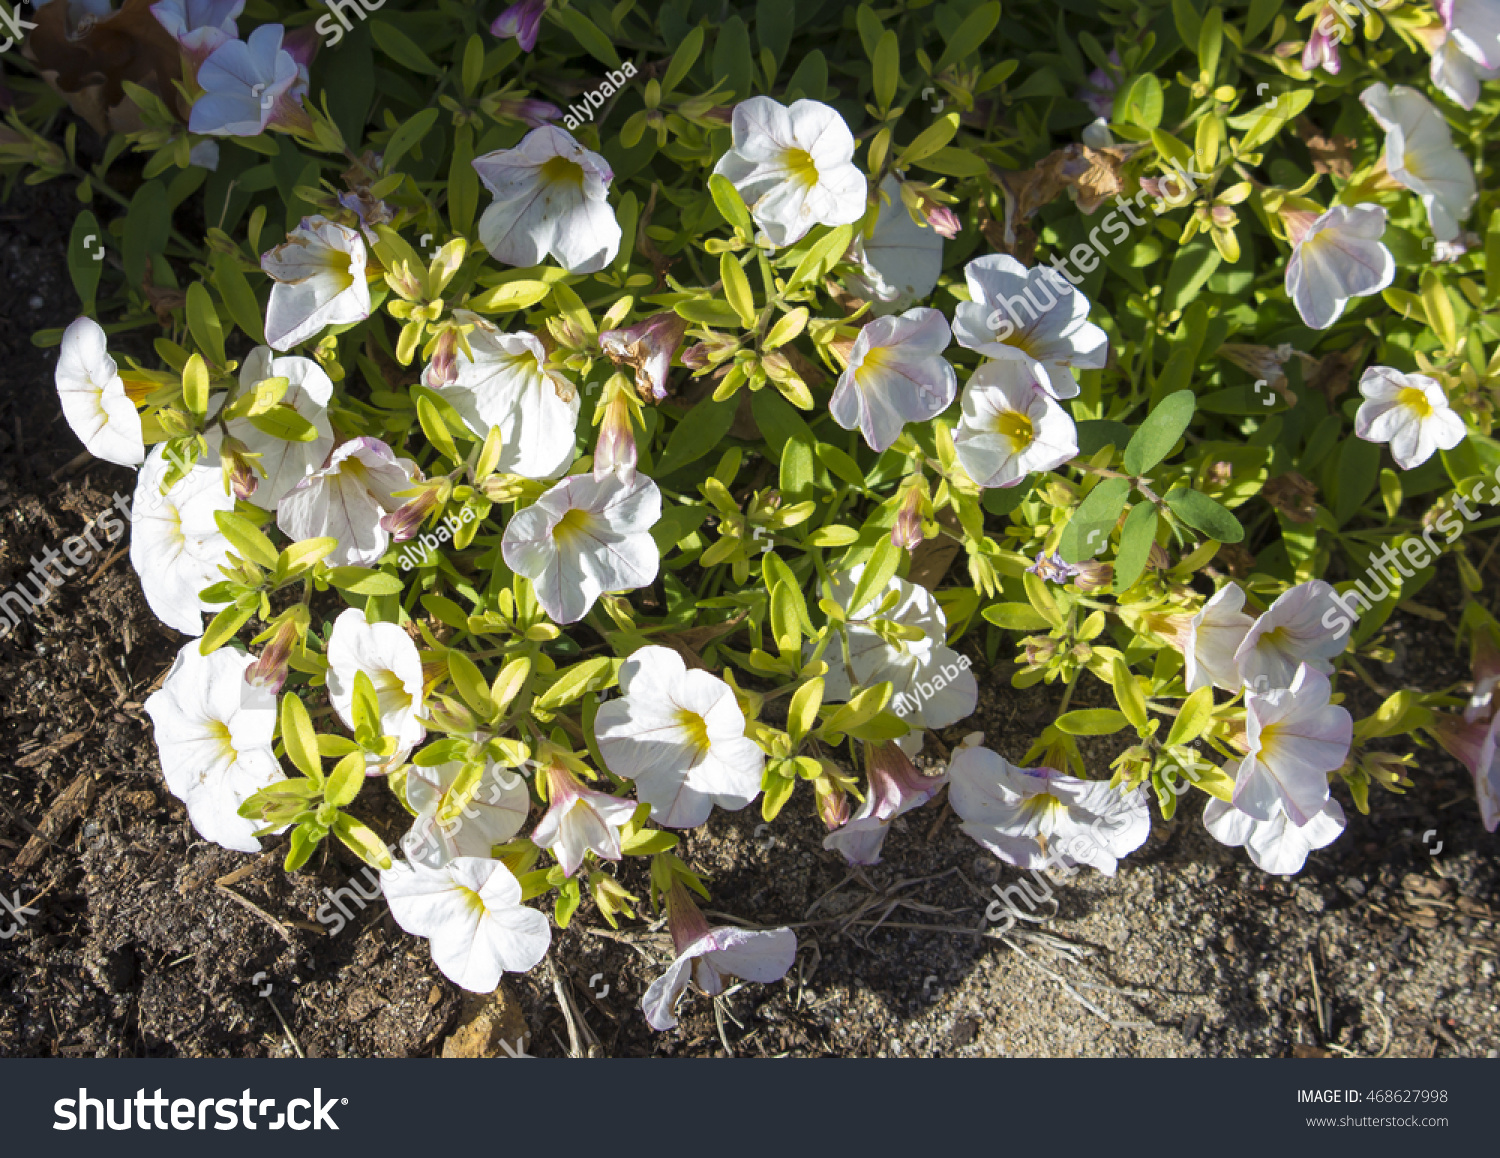 White Perennial Petunias Add Bright Pop Stock Photo 100 Legal